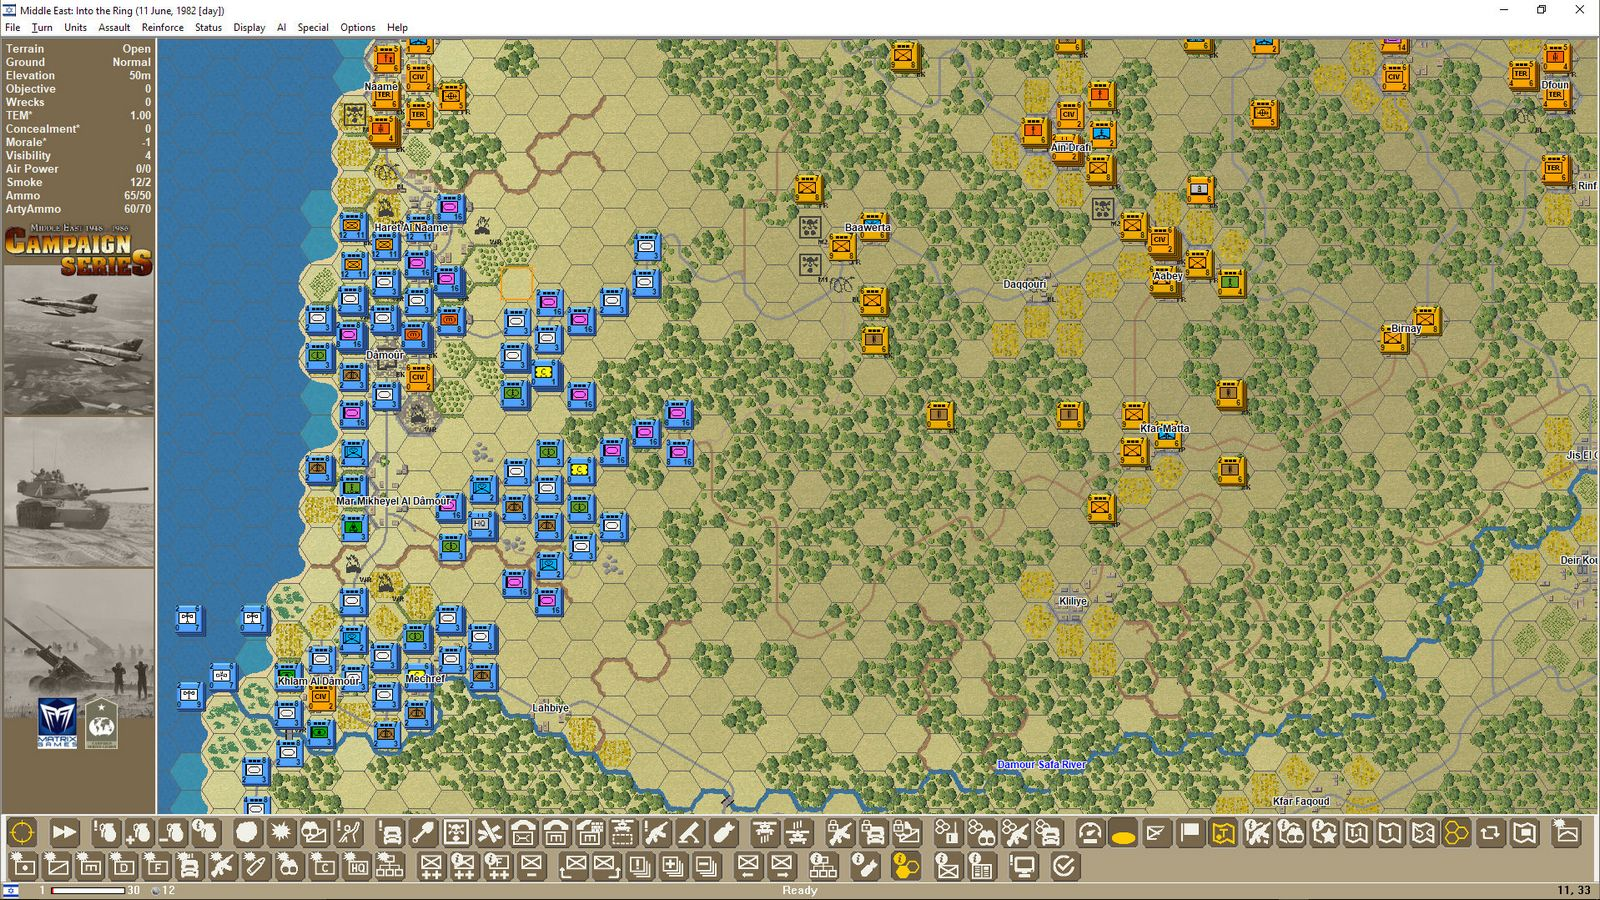 campaign-series-middle-east-2-0-0118-03